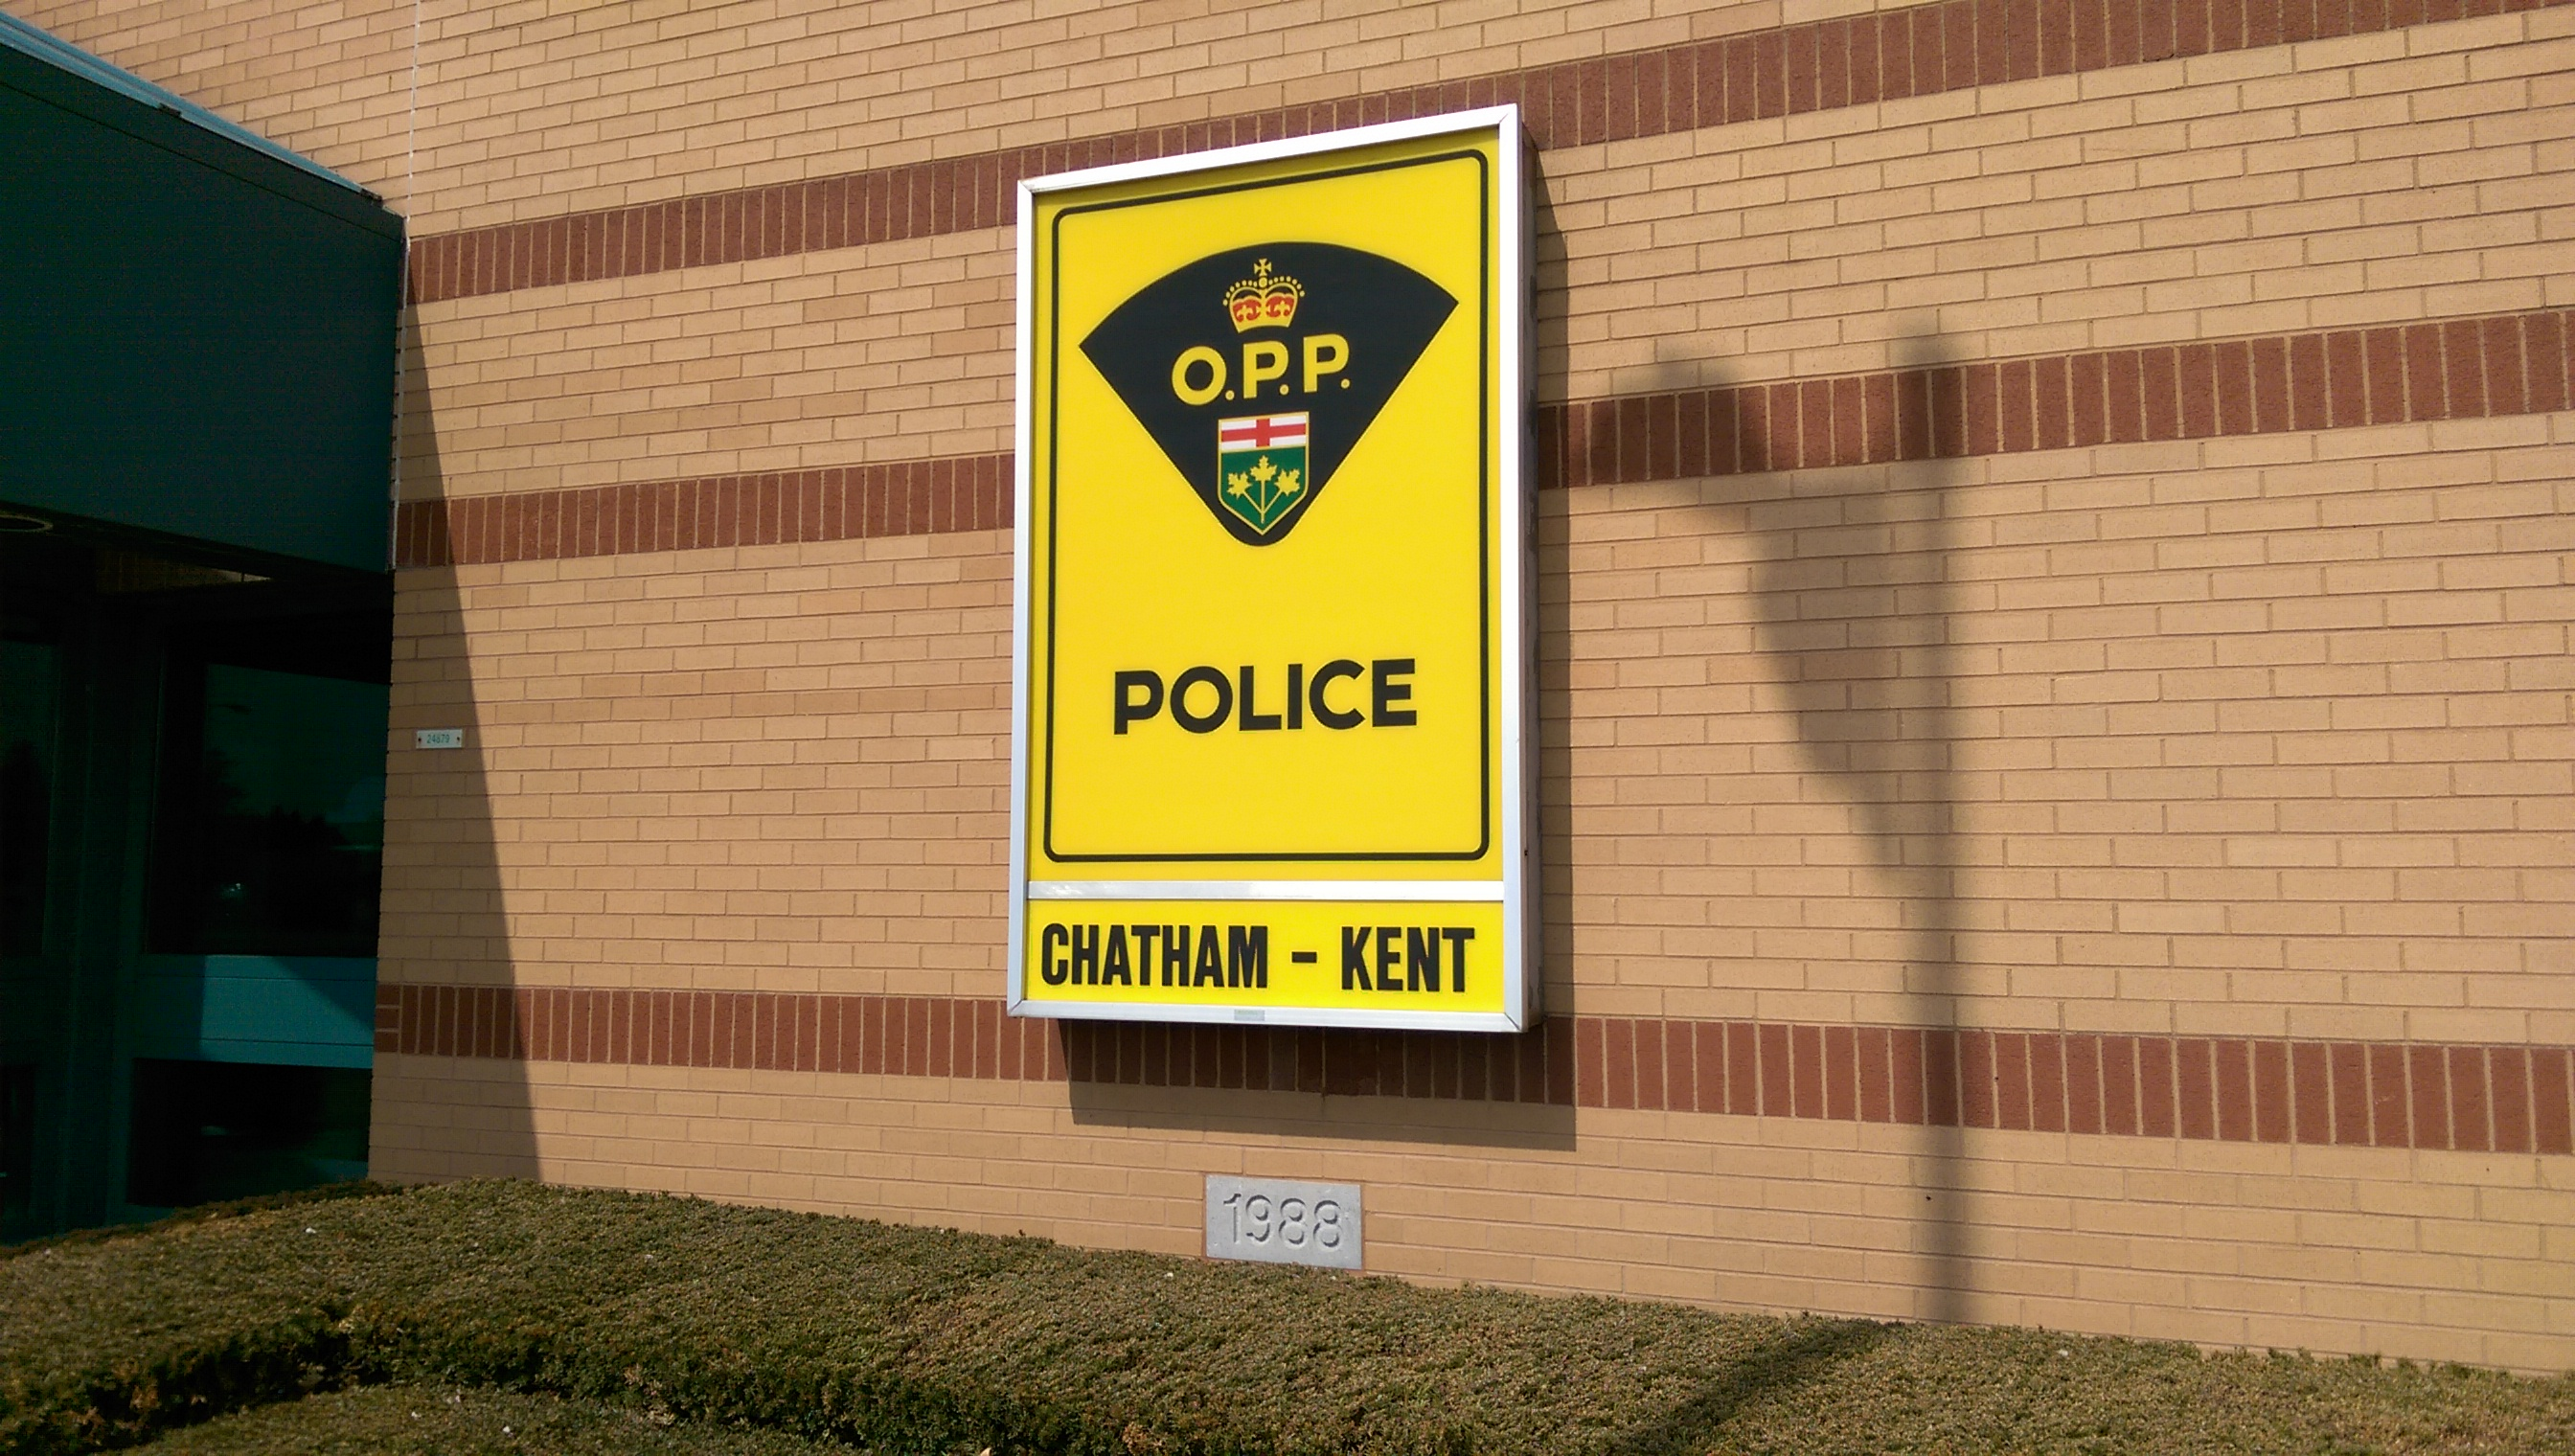 Chatham-Kent OPP (Photo by Matt Weverink)